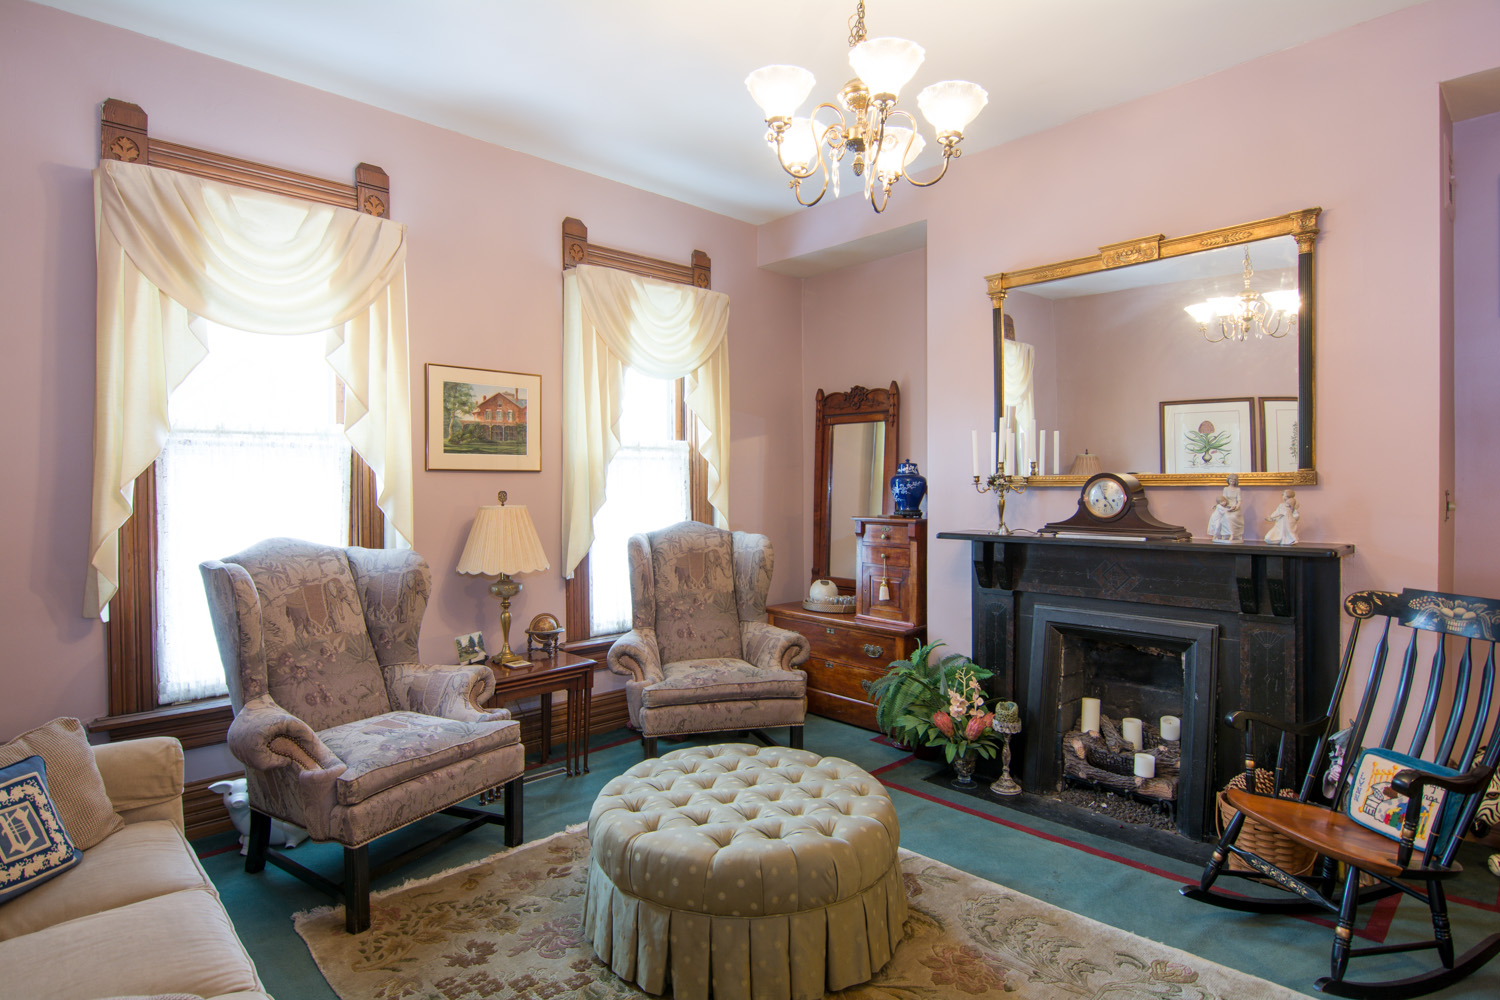 Harrison House Bed and Breakfast Columbus Ohio Home. Harrison House Bed and Breakfast